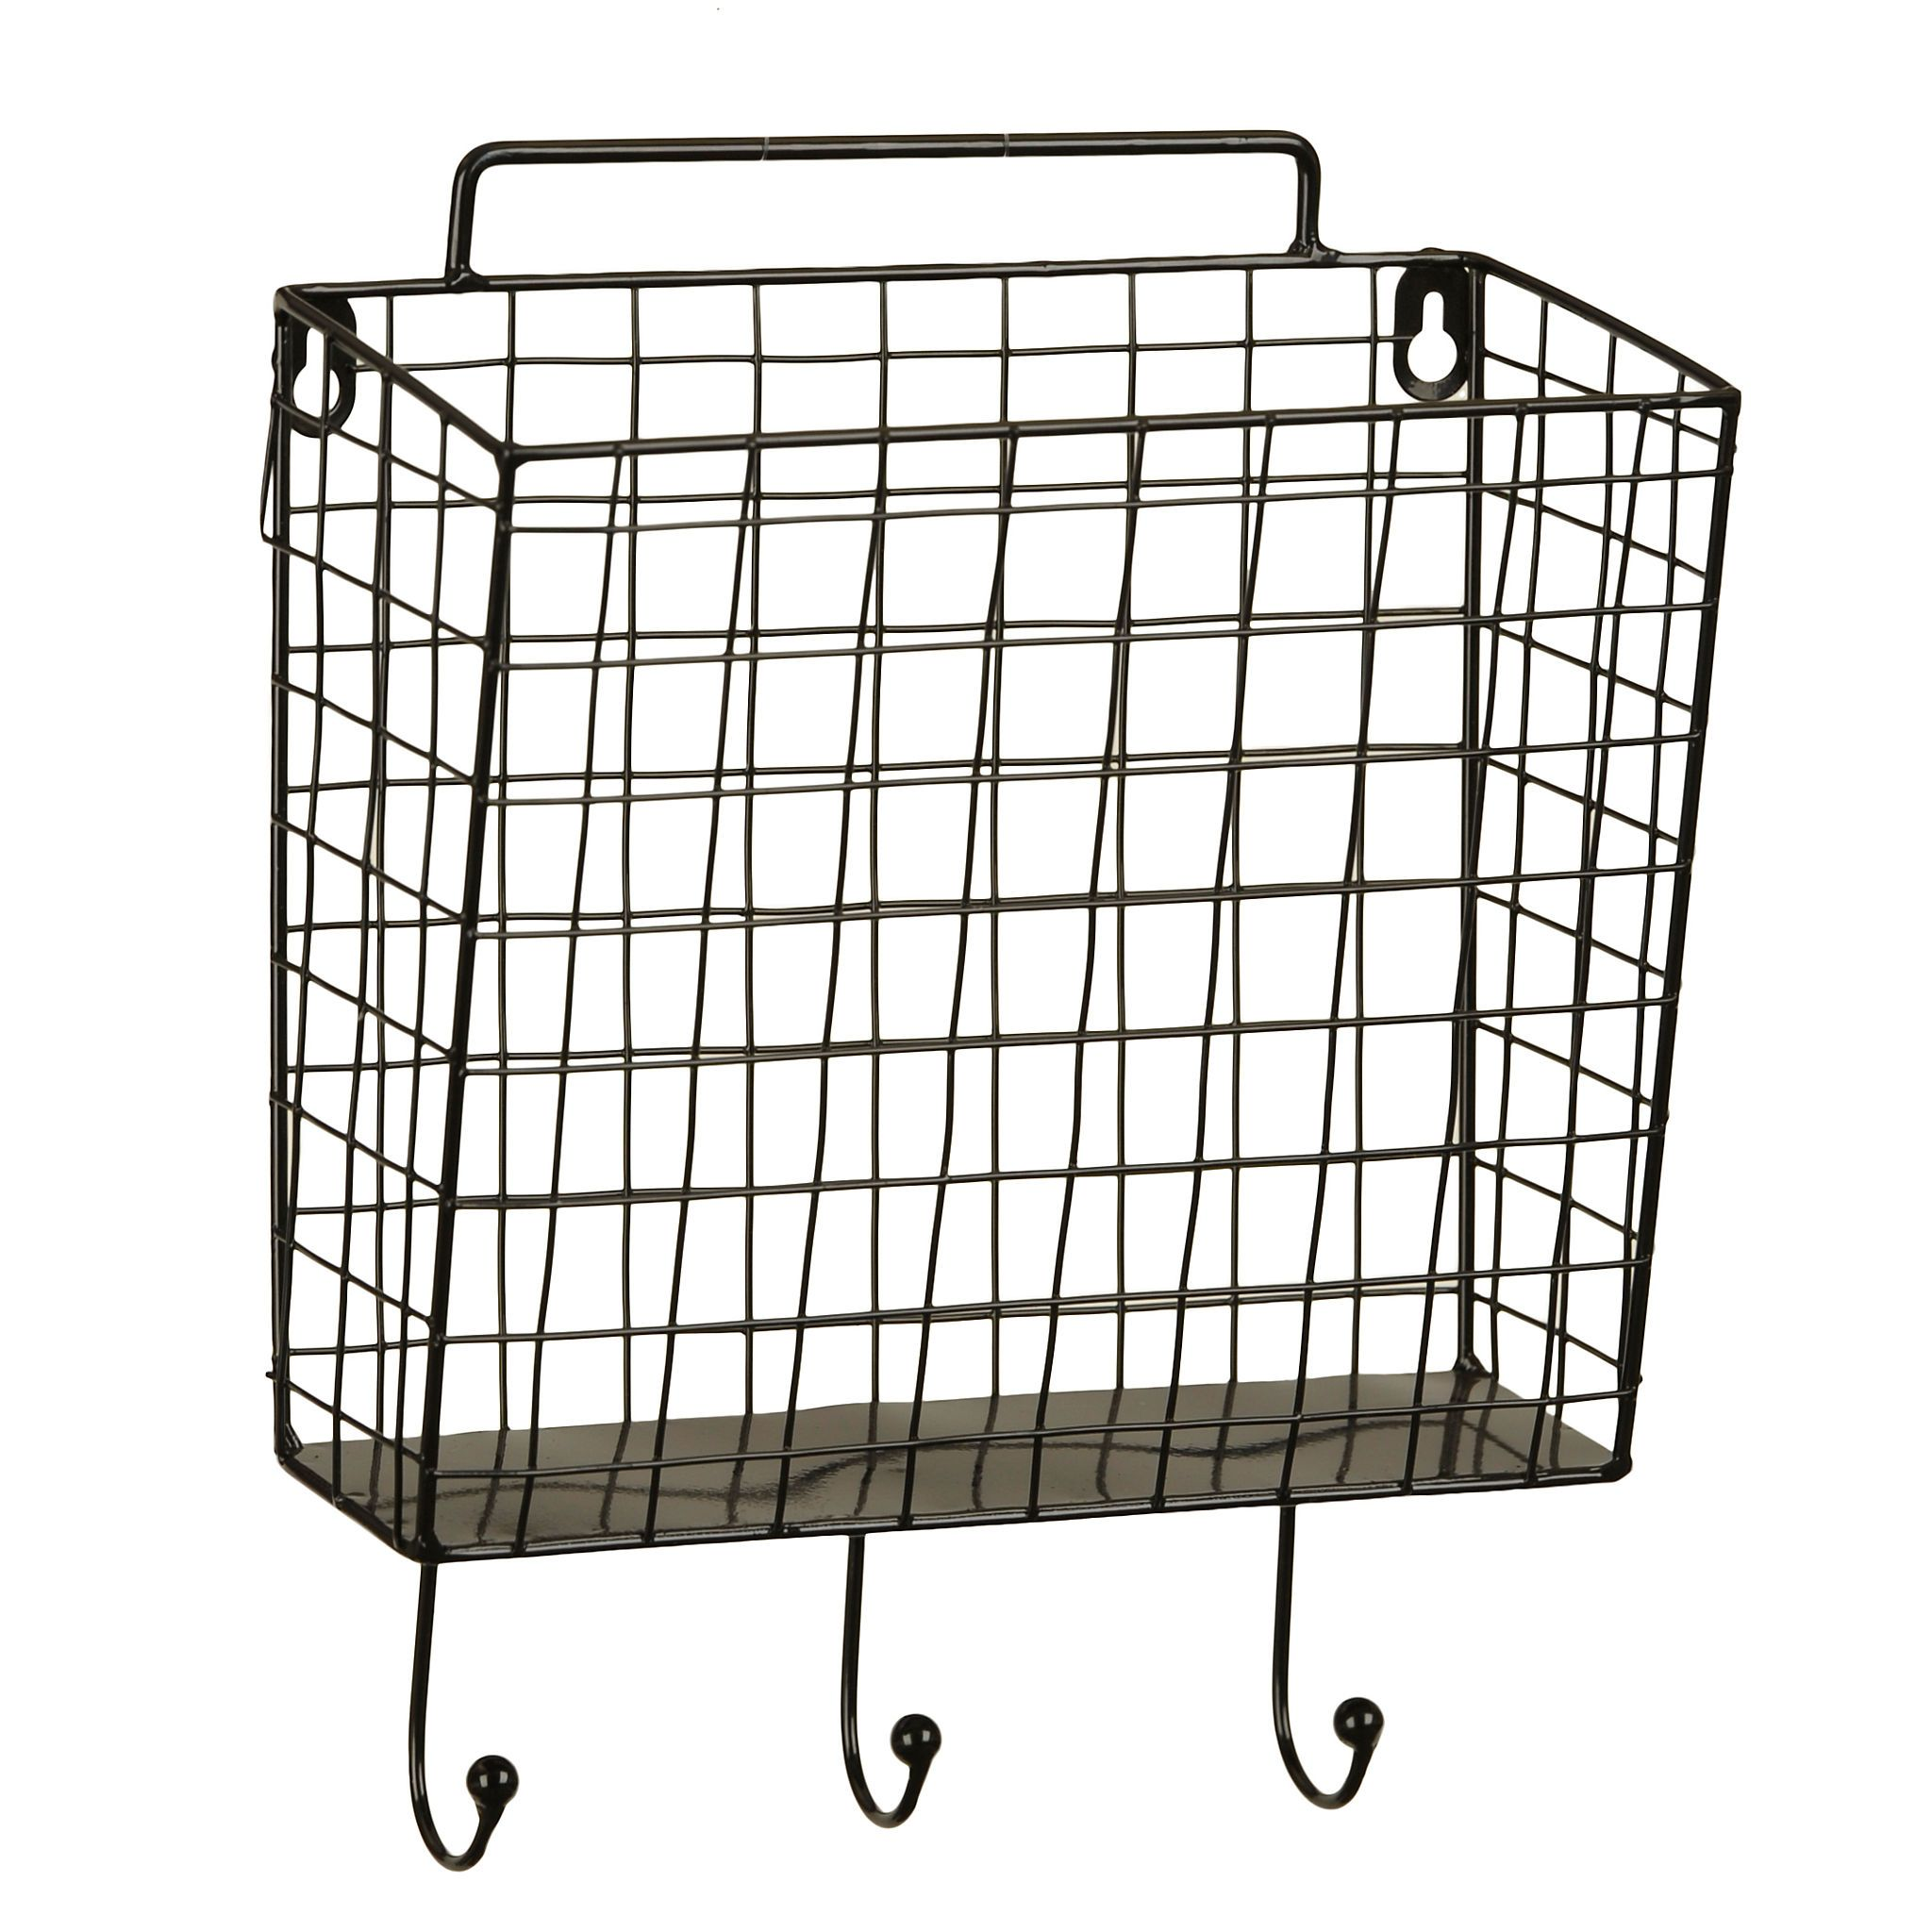 Metal Wall Baskets With Hooks Hobby Lobby Metal Wall Basket Baskets On Wall Home Decor Baskets